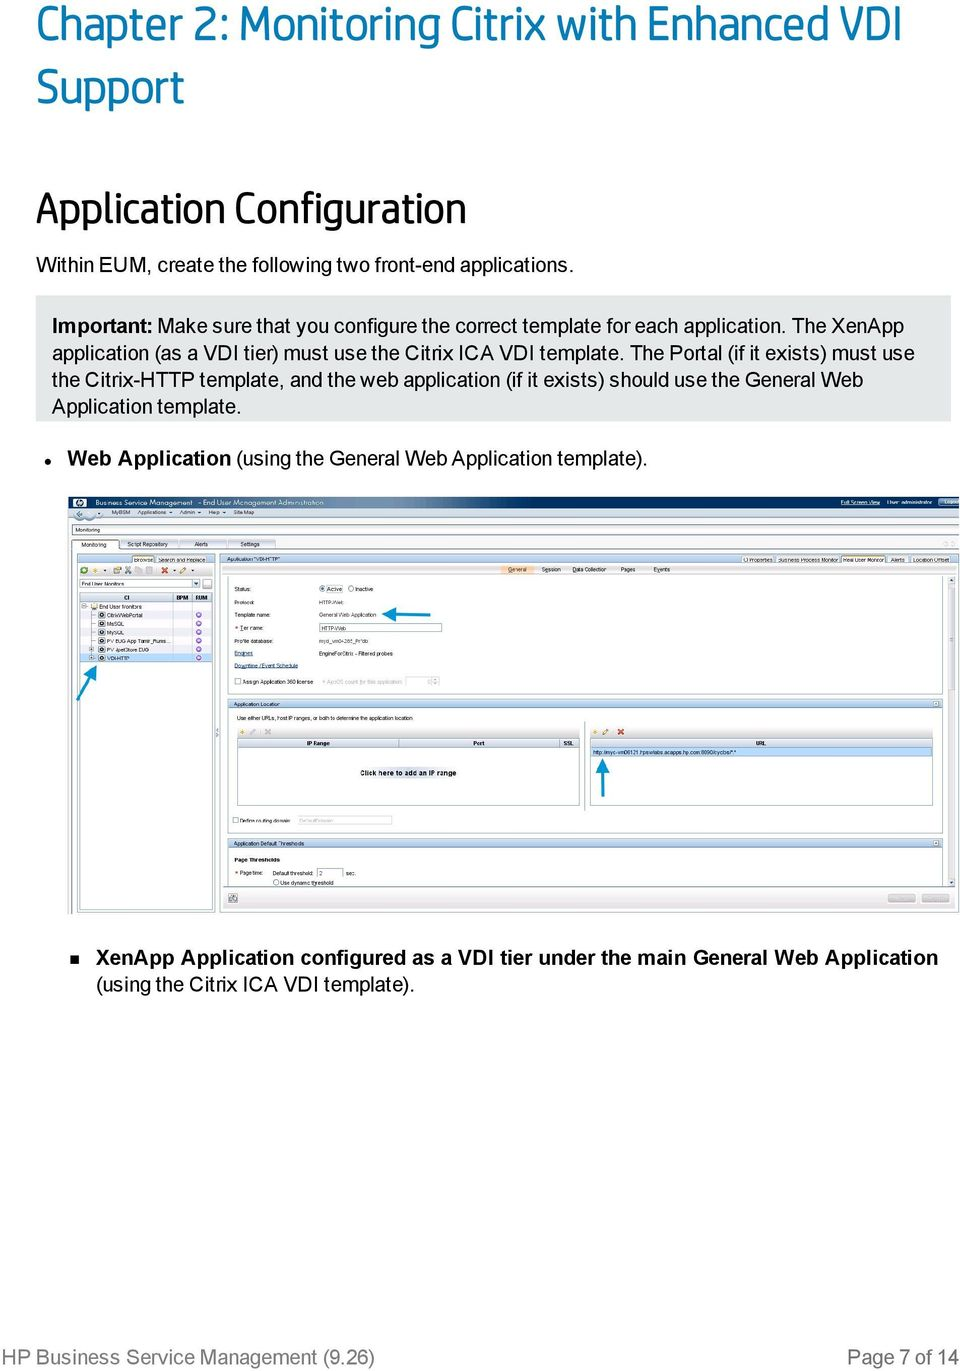 The Portal (if it exists) must use the Citrix-HTTP template, and the web application (if it exists) should use the General Web Application template.